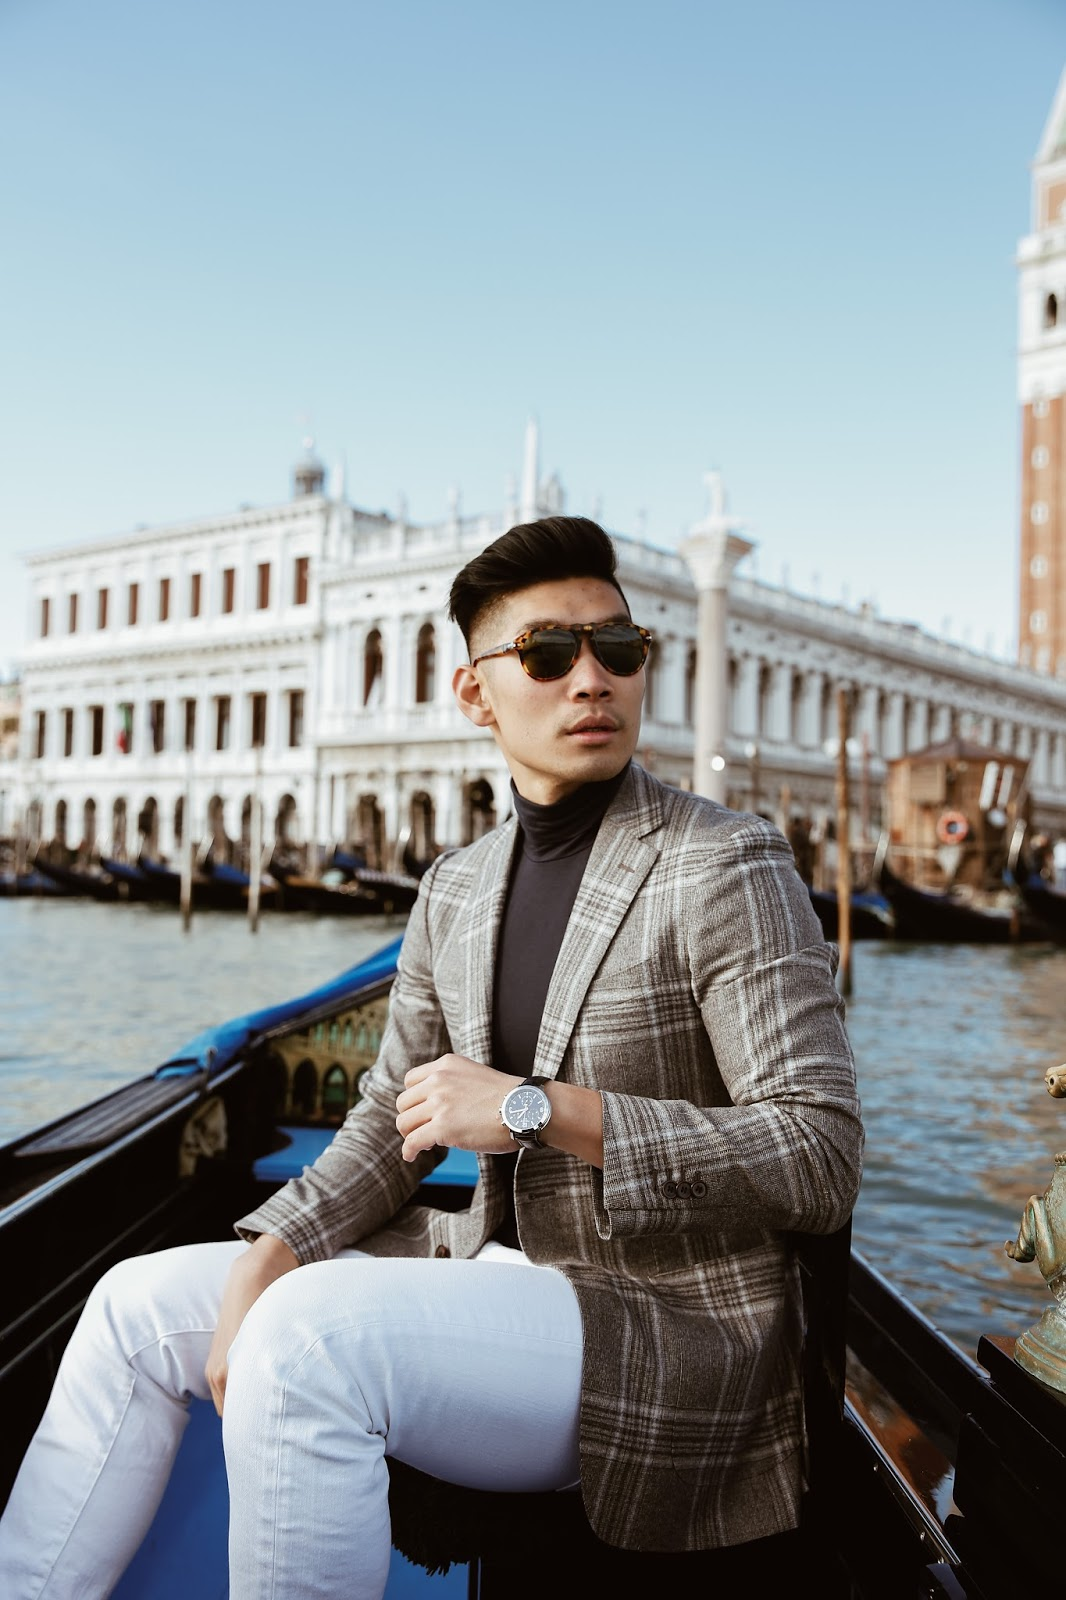 Leo Chan wearing Blazer with Jeans in Venice Italy